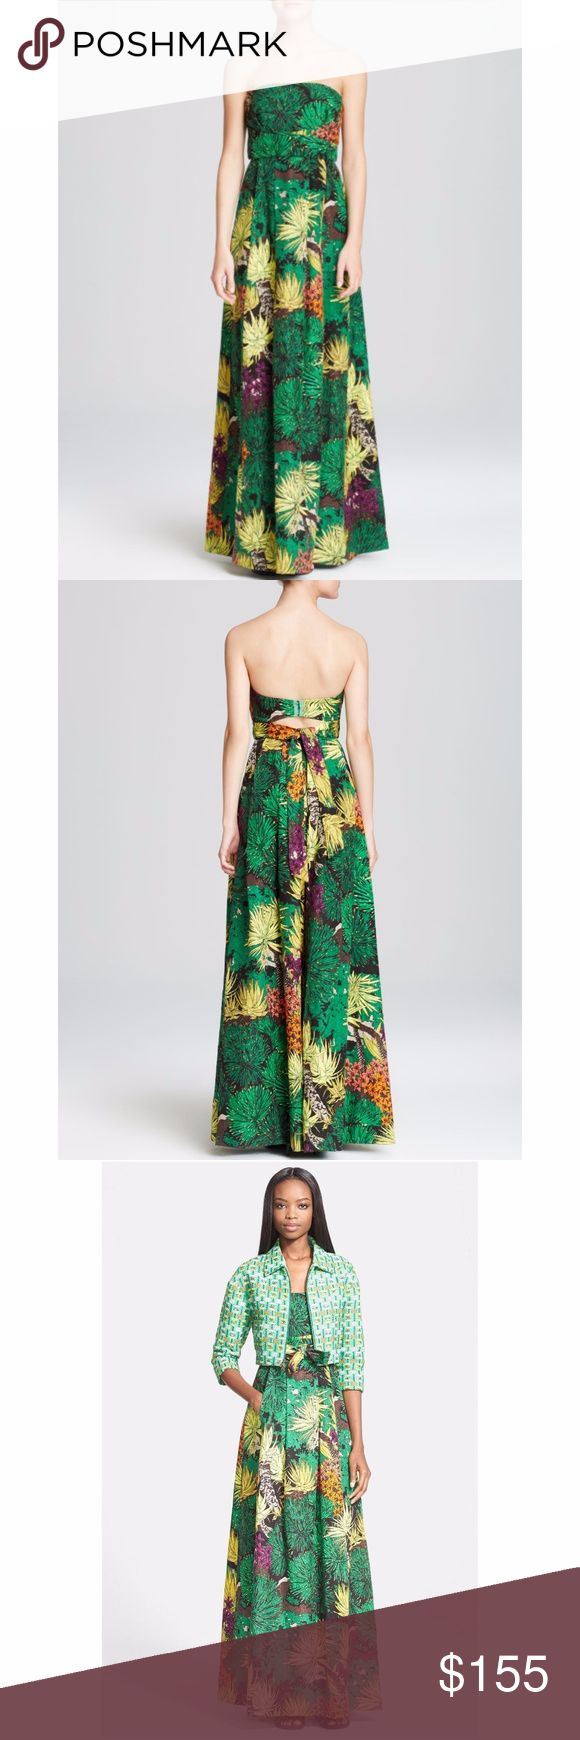 "NEW Tracy Reese Cactus Flower Print Strapless Gown A lavish desert print displays a multitude of cactus flowers across the flowing silhouette of this strapless floor-length gown. Built-in boning and a seamed waist create a flattering fit, further defined by a crisscrossing bow that ties in back. Hidden front pockets and a cutout back complete the youthful design. 53"" center front length (size 8). Back zip and hook-and-eye closure. On-seam pockets. Fully lined, with built-in boning in bodice…"